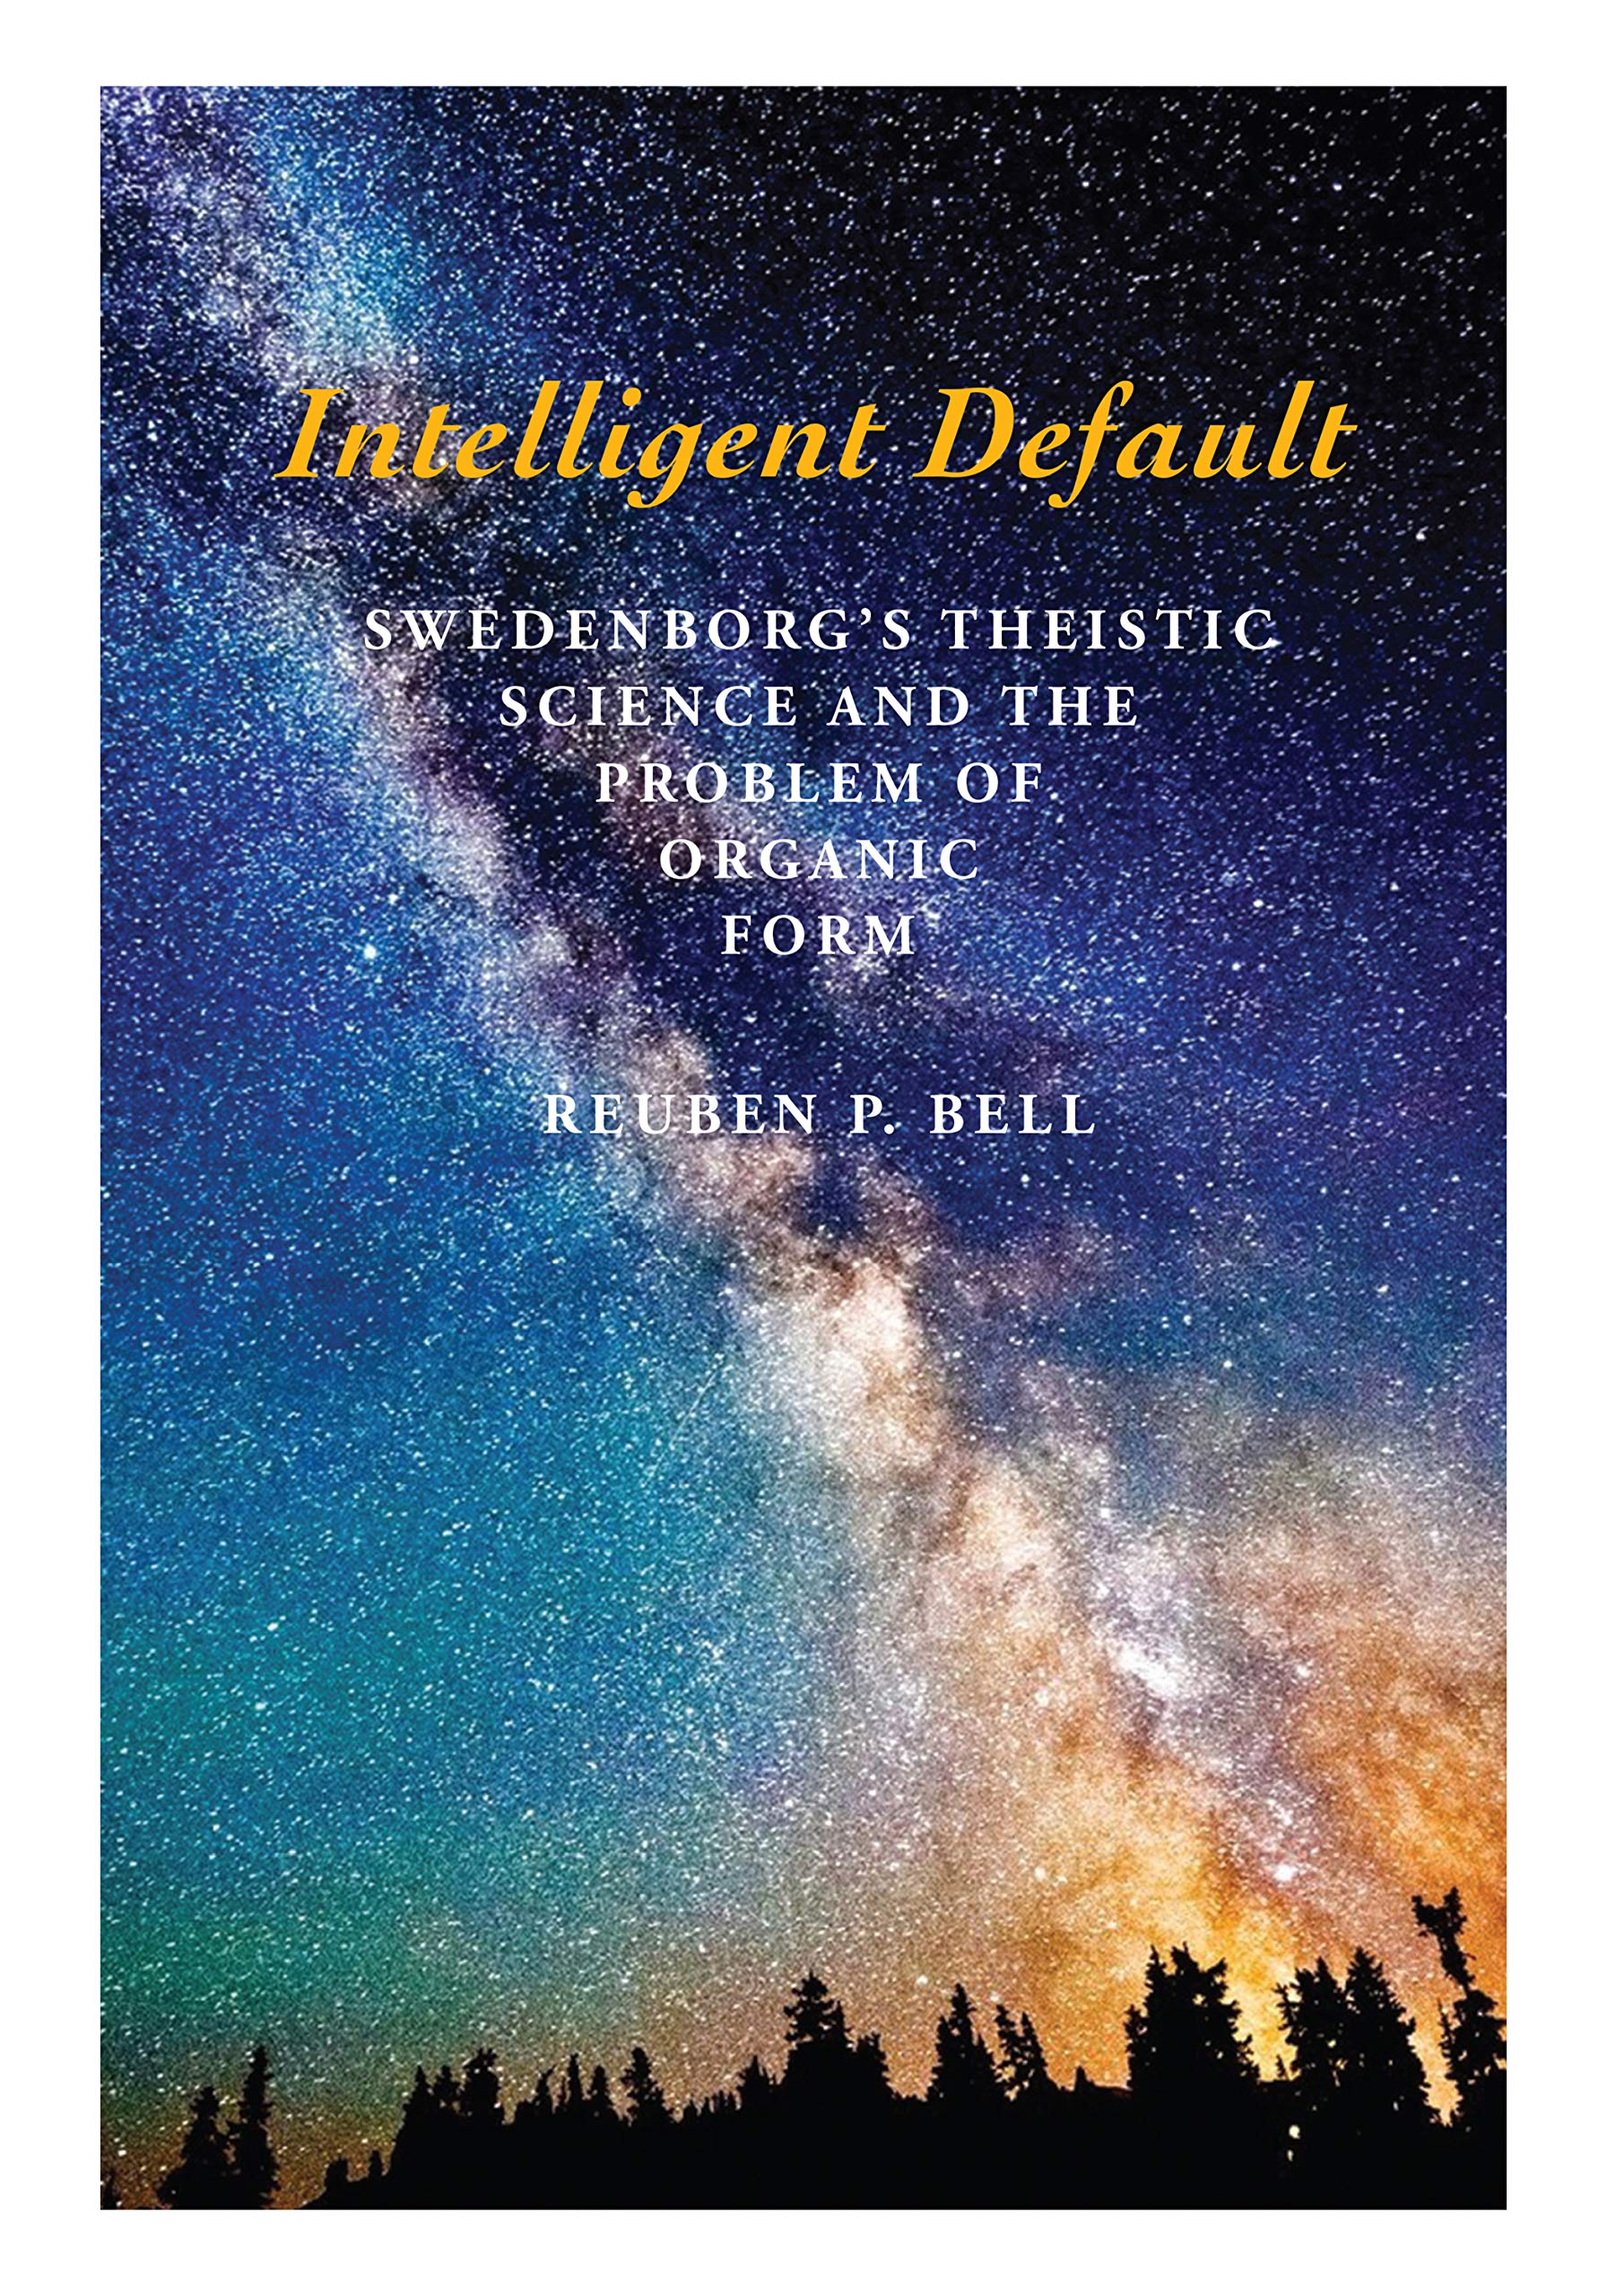 Intelligent Default: Swedenborg's Theistic Science and the Problem of Organic Form